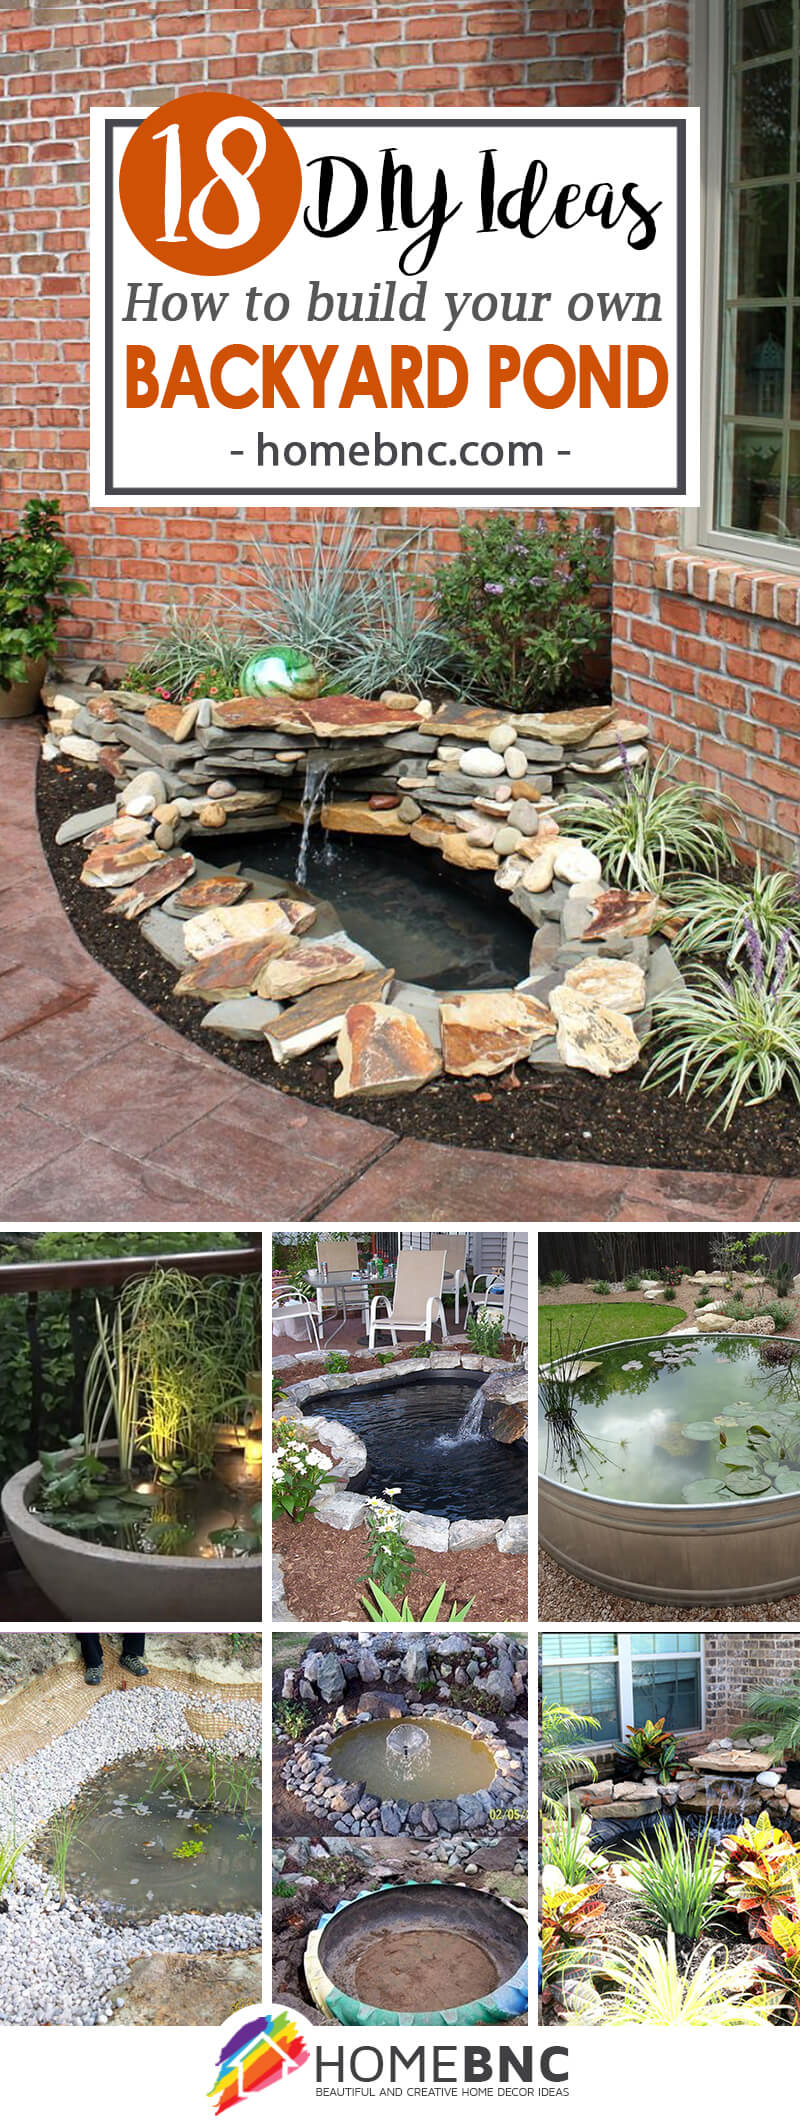 18 Best Diy Backyard Pond Ideas And Designs For 2019 within 11 Some of the Coolest Ways How to Makeover Backyard Pond Ideas